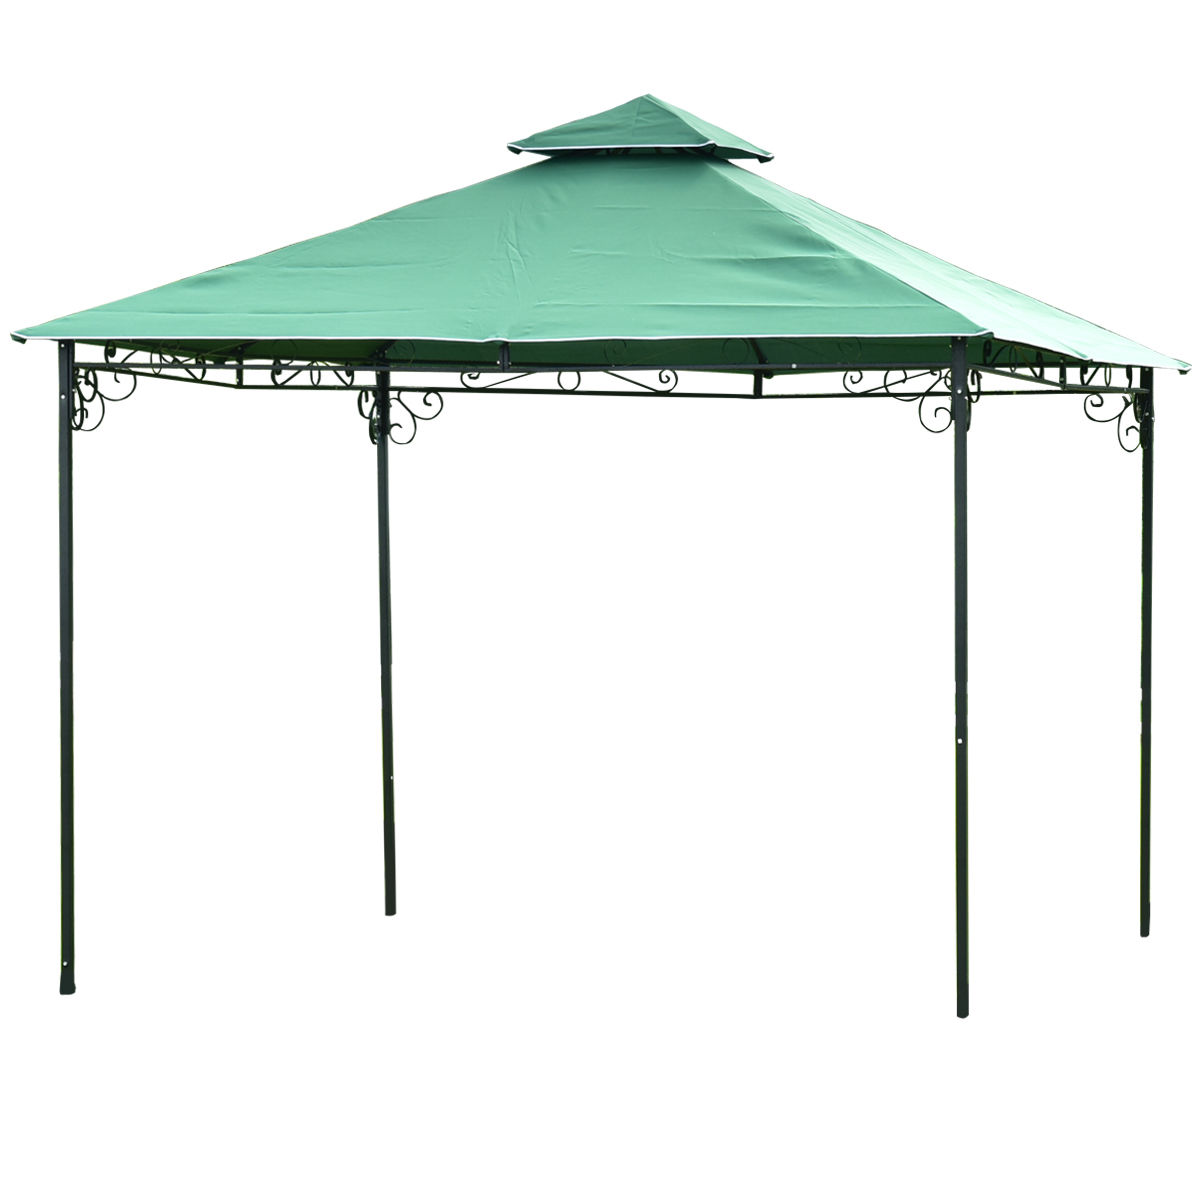 Gymax 2 Tier 10'x10' Patio Outdoor Tent Gazebo Canopy Shelter